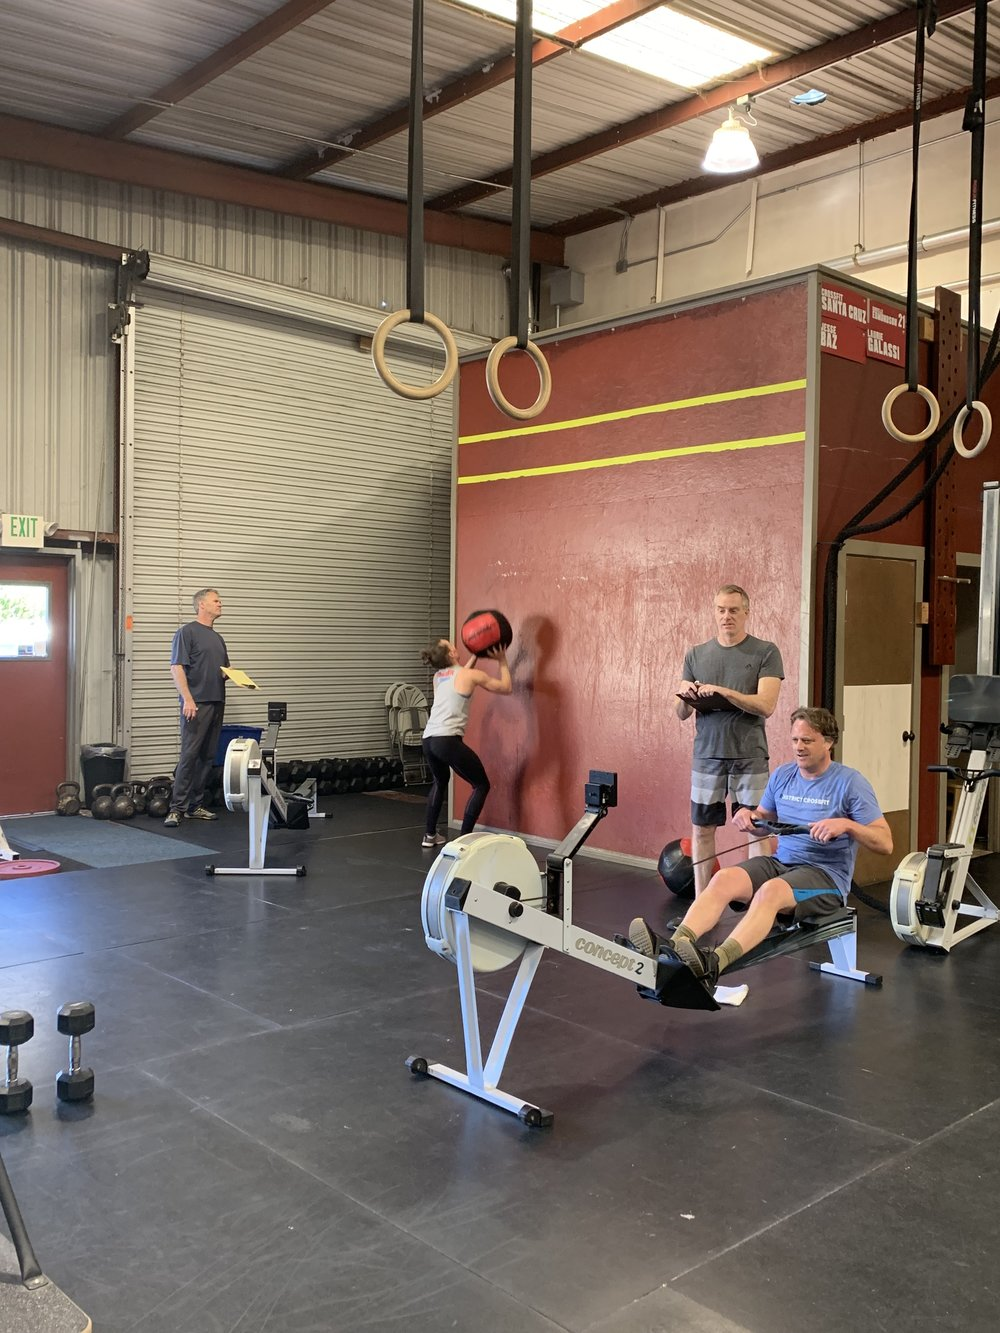 The 10 a.m. class doing Open Workout 19.1